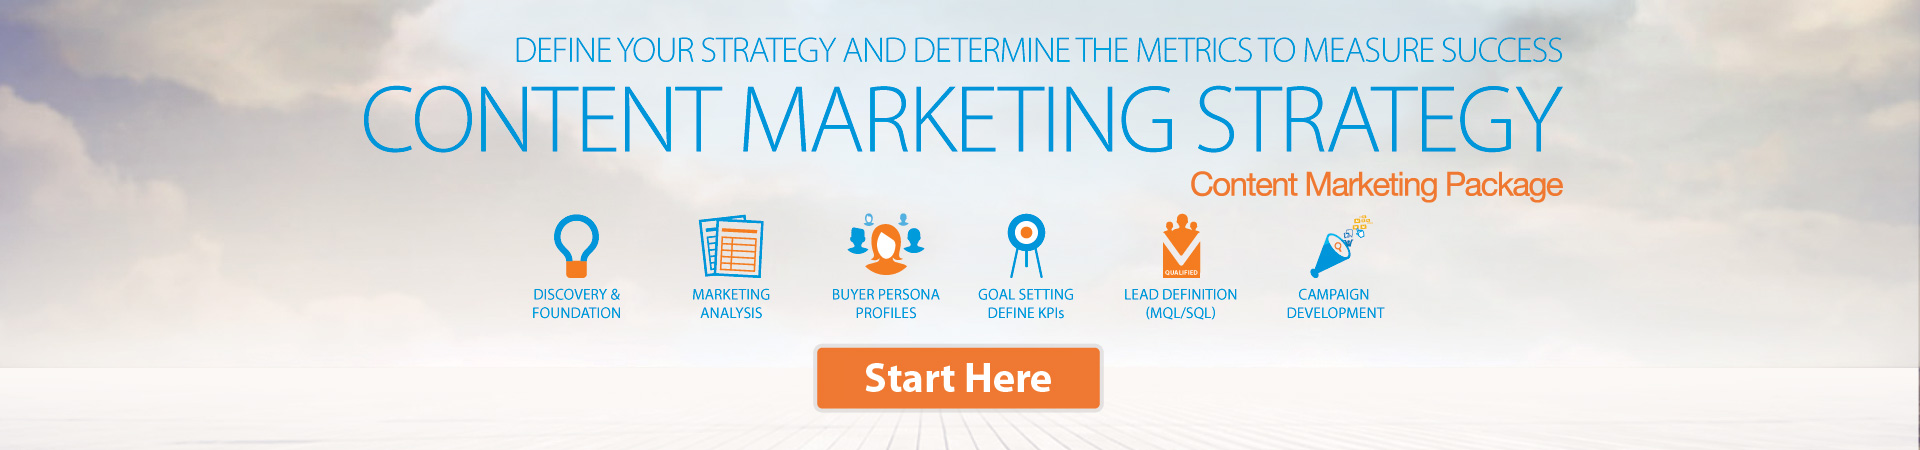 Content-Marketing-Metrics-Measure